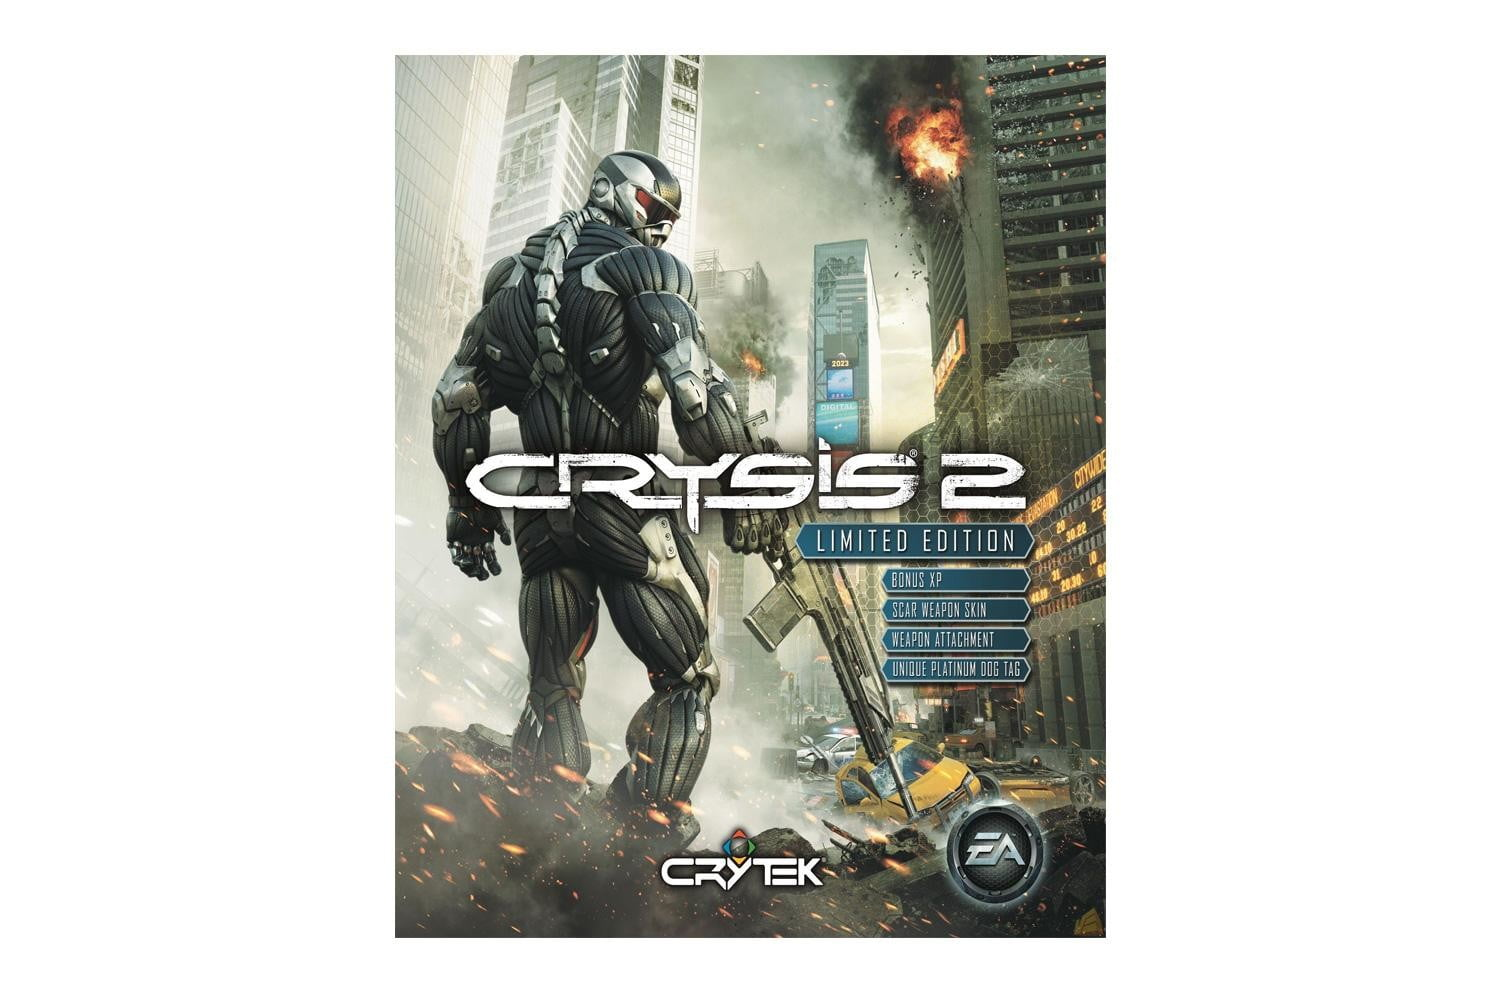 Crysis-2-cover-art